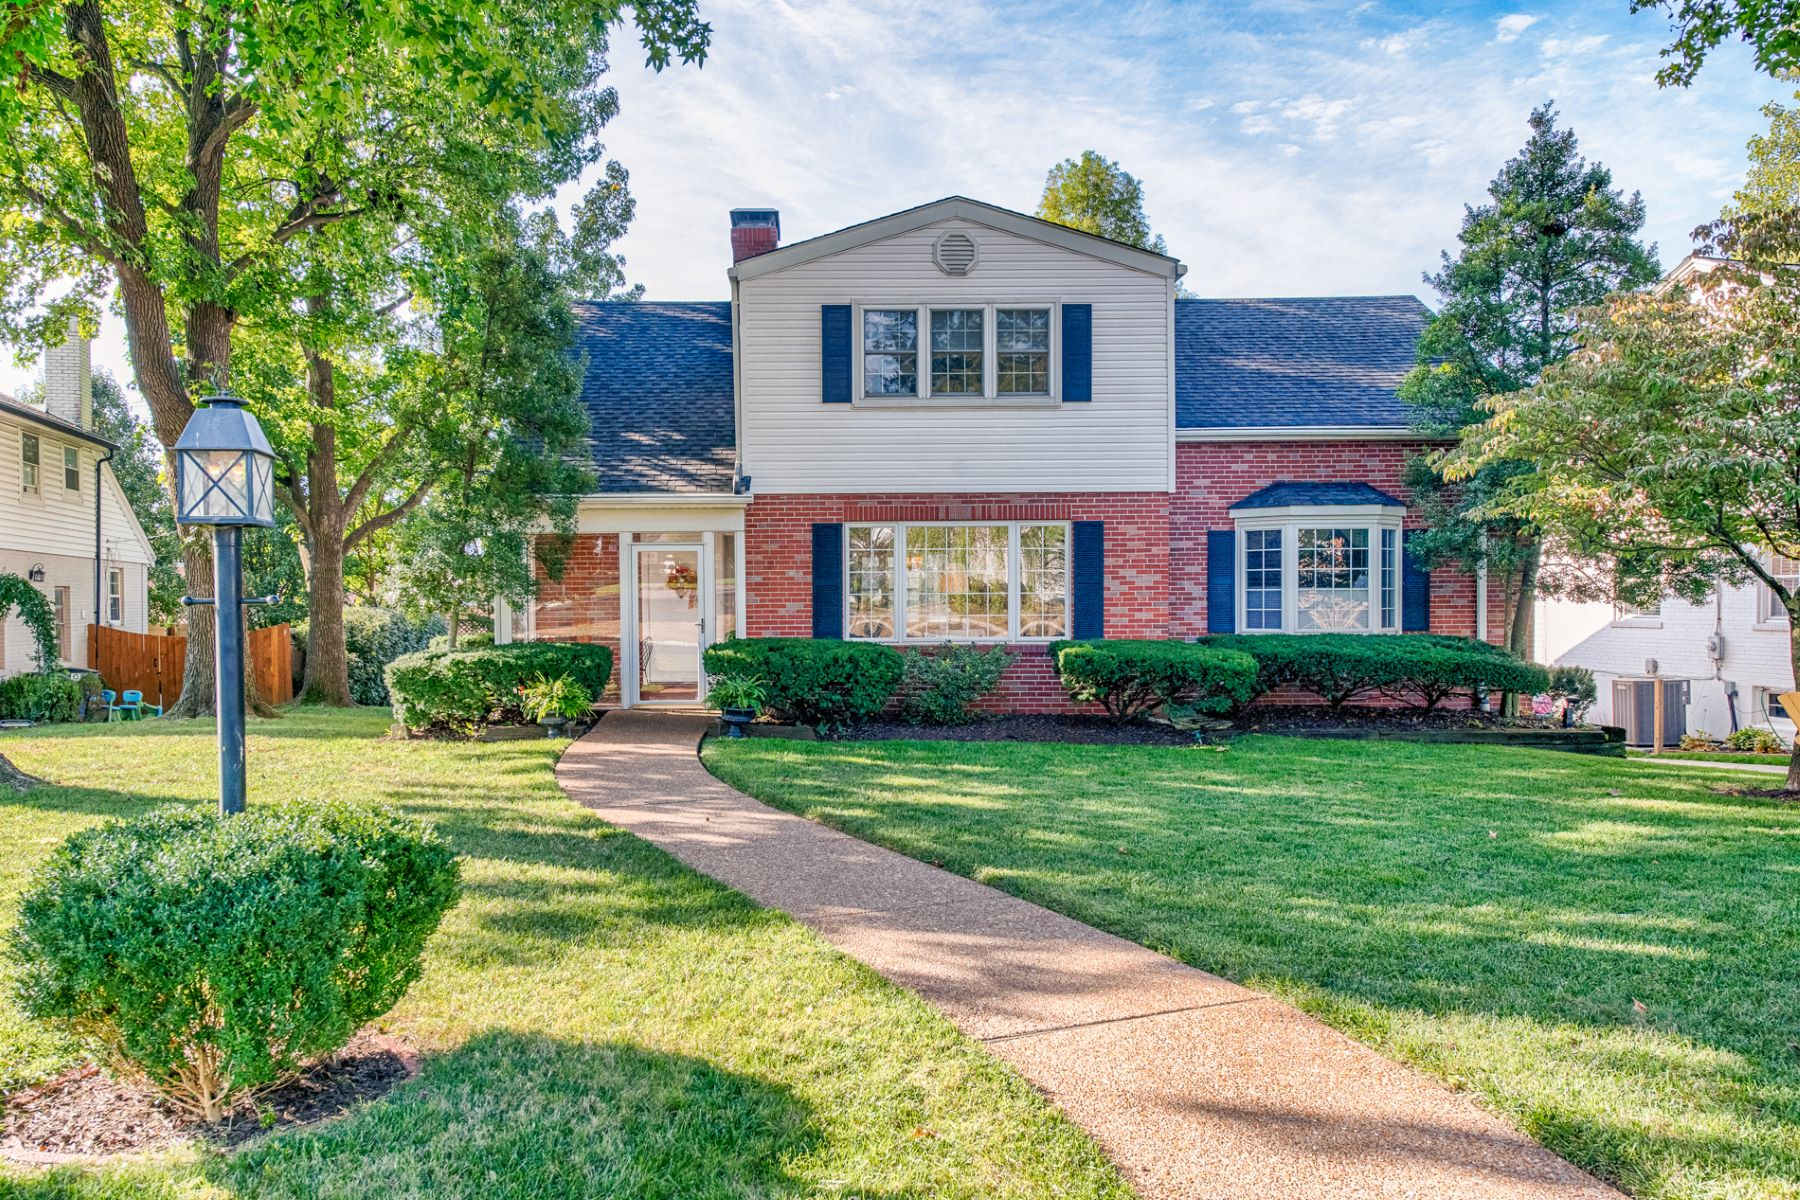 Single Family Home for Sale at Colonial Lane 8542 Colonial Lane Ladue, Missouri 63124 United States